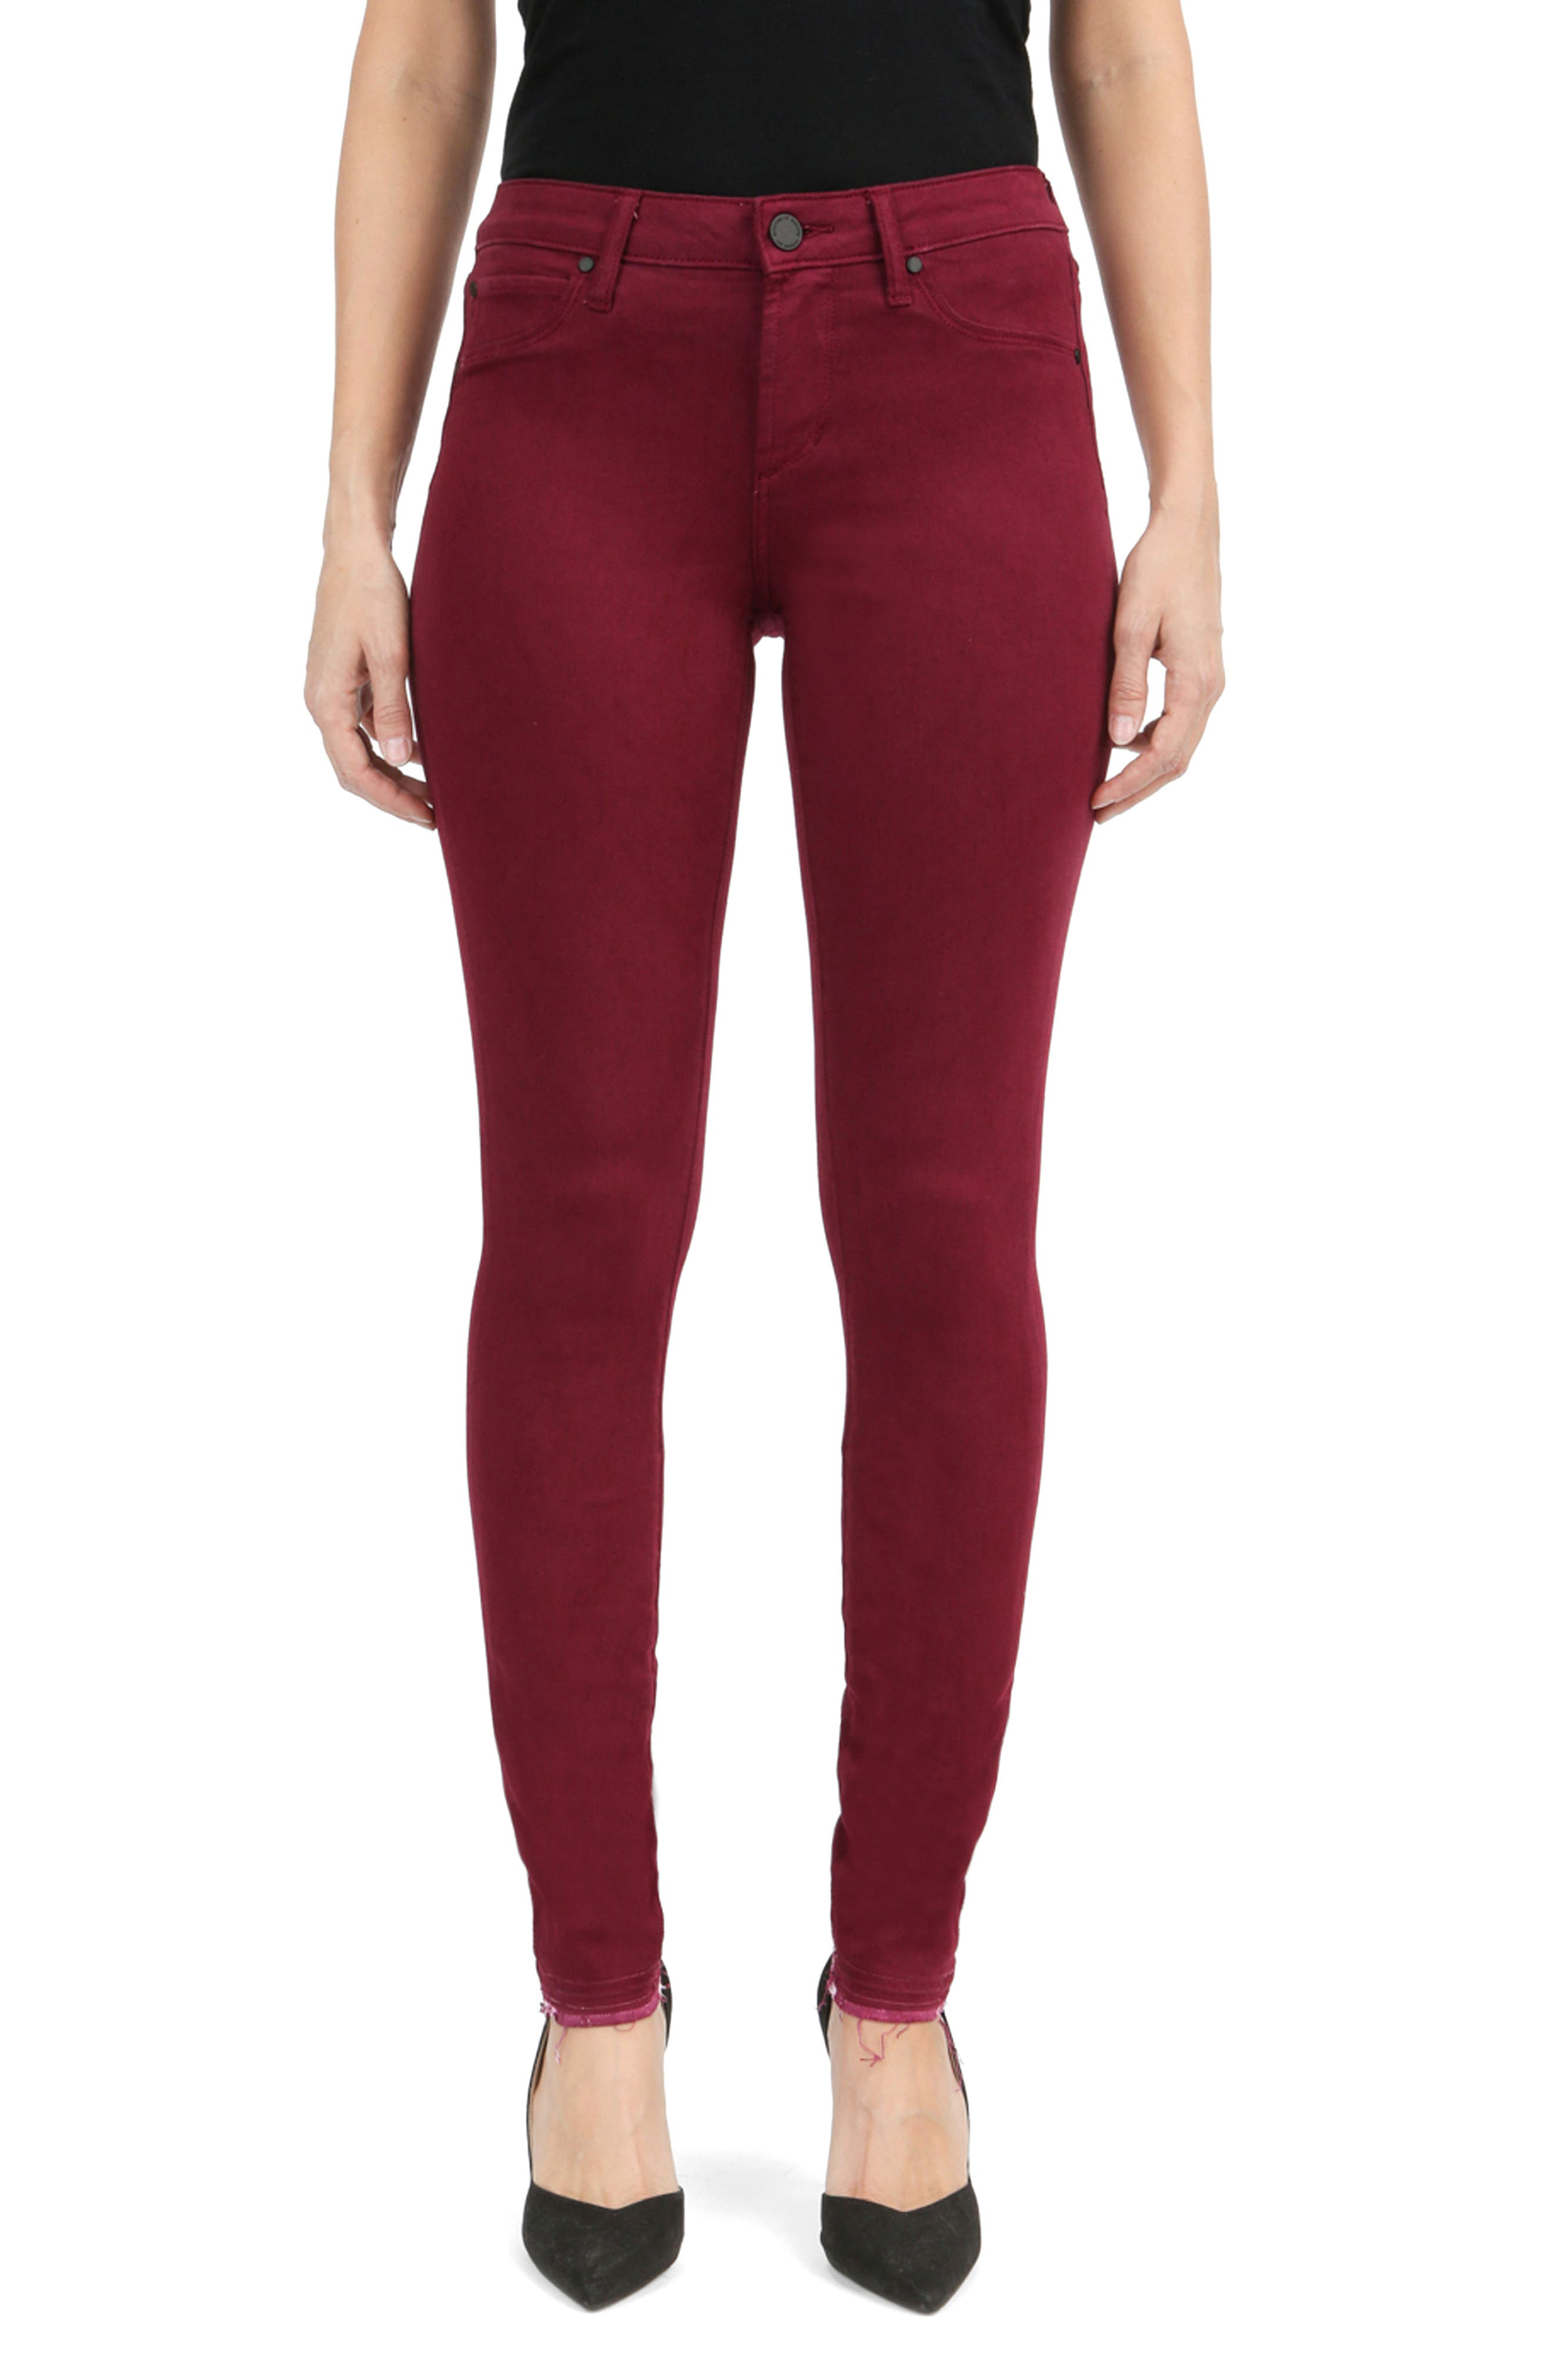 Articles of Society Sarah Release Hem Skinny Jeans